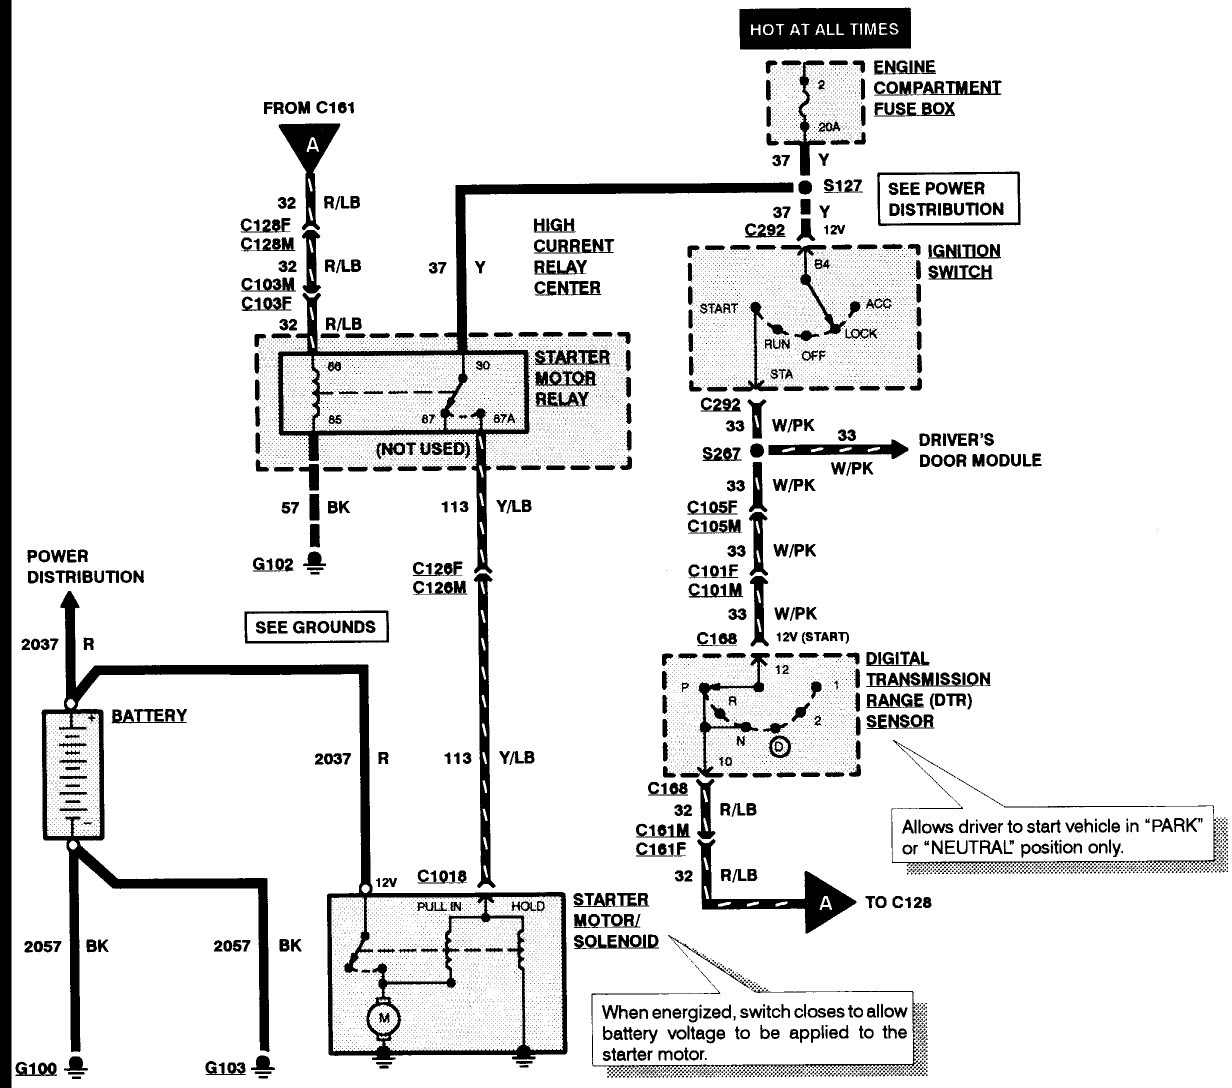 Stater 1994 F150 Wiring Diagram Wiring Diagram Effective A Effective A Bowlingronta It